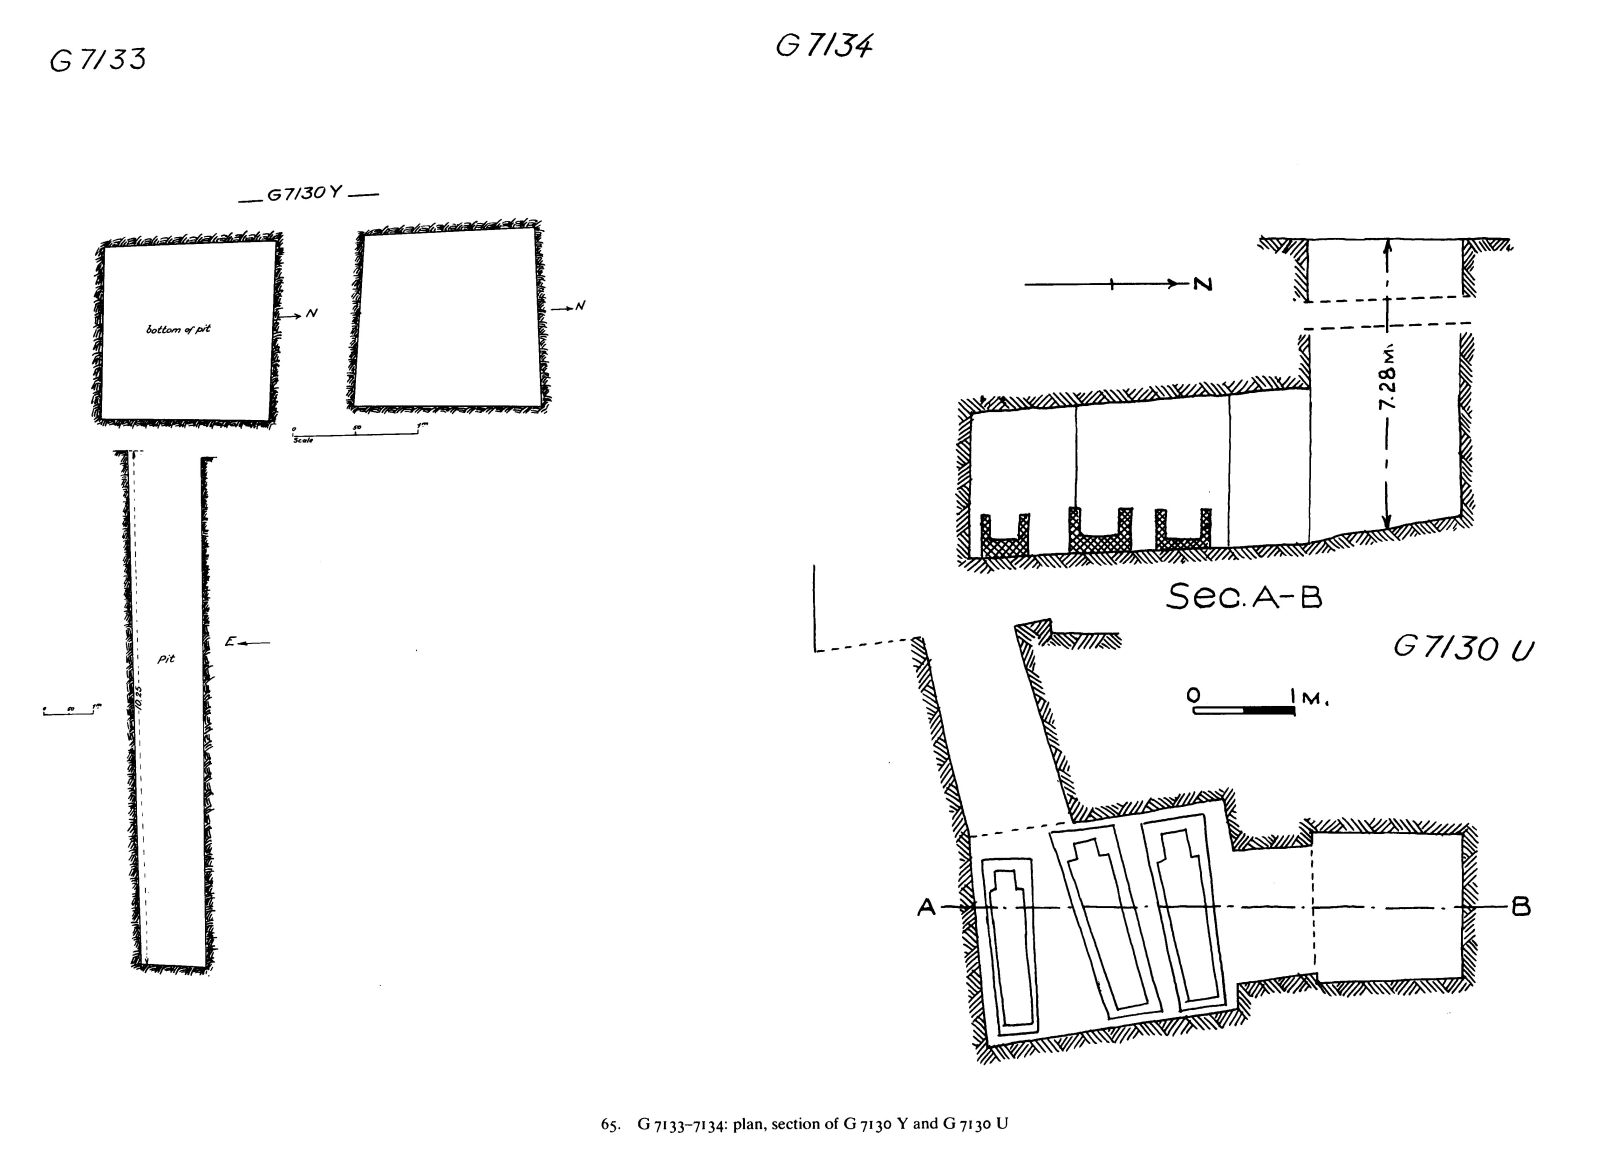 Maps and plans: G 7130, Shaft Y (= G 7133) and G 7130, Shaft U (= G 7134)